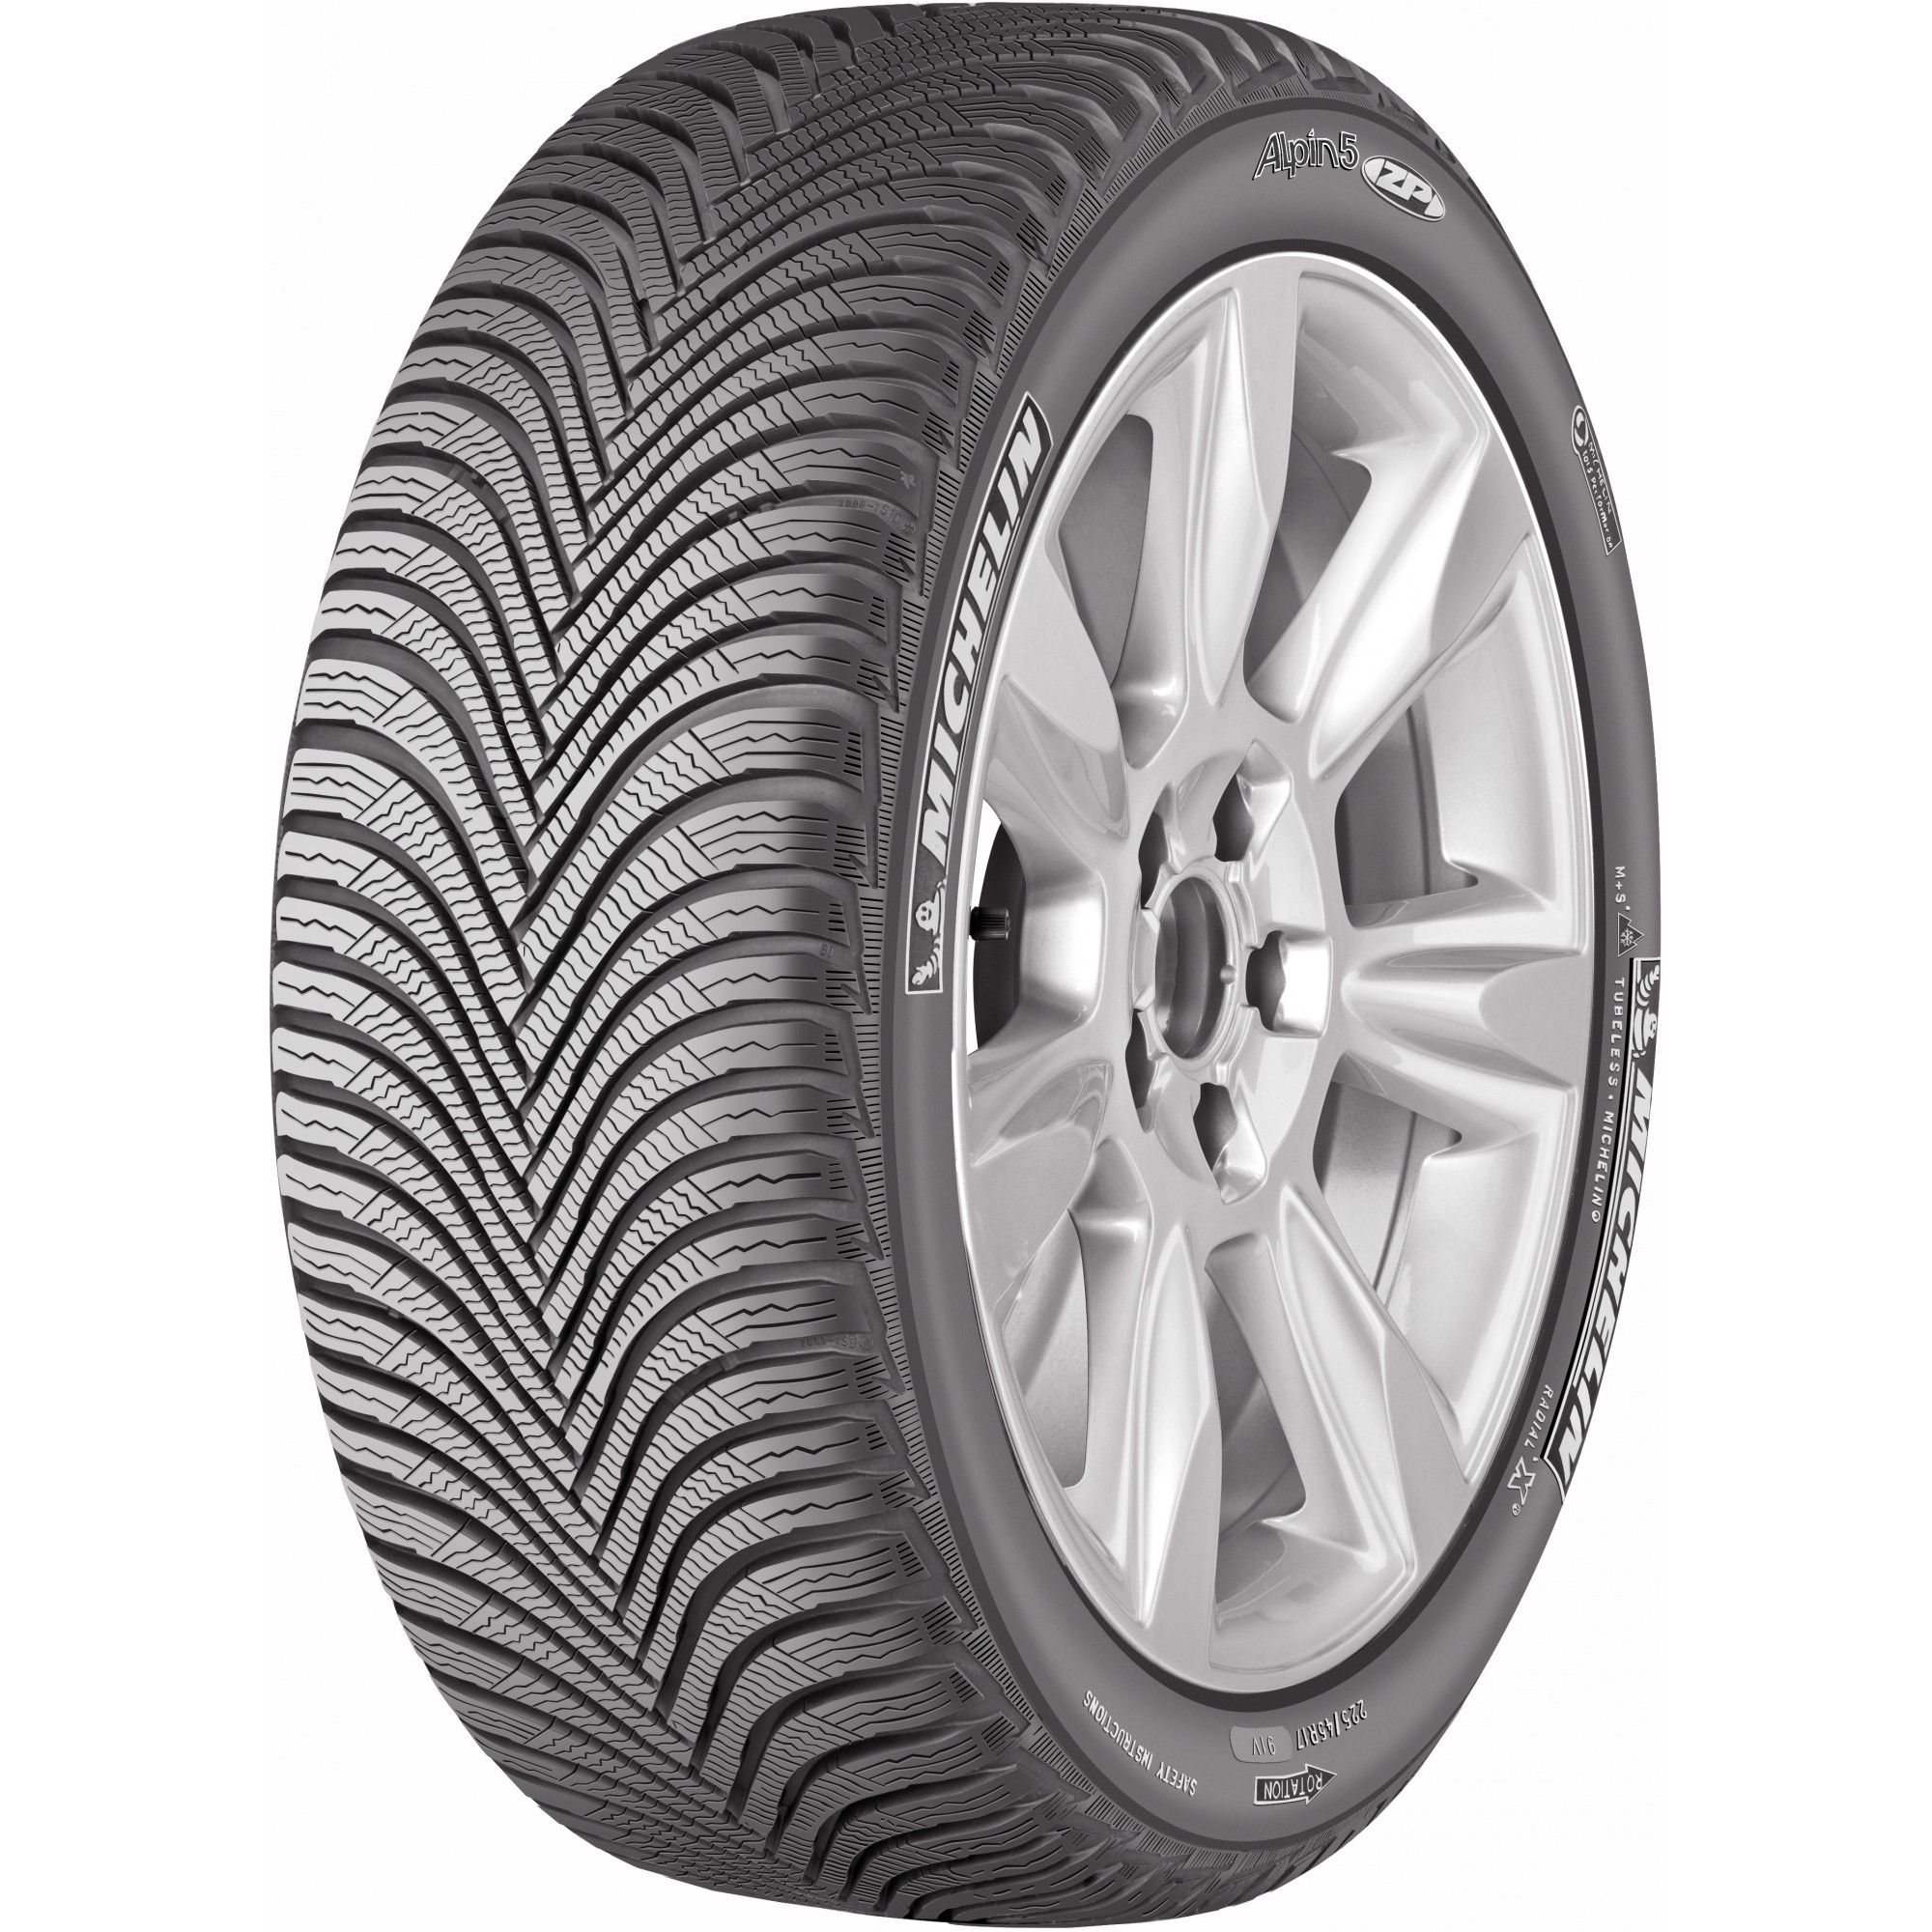 Зимняя шина Michelin Alpin 5 225/55 R16 95V RF